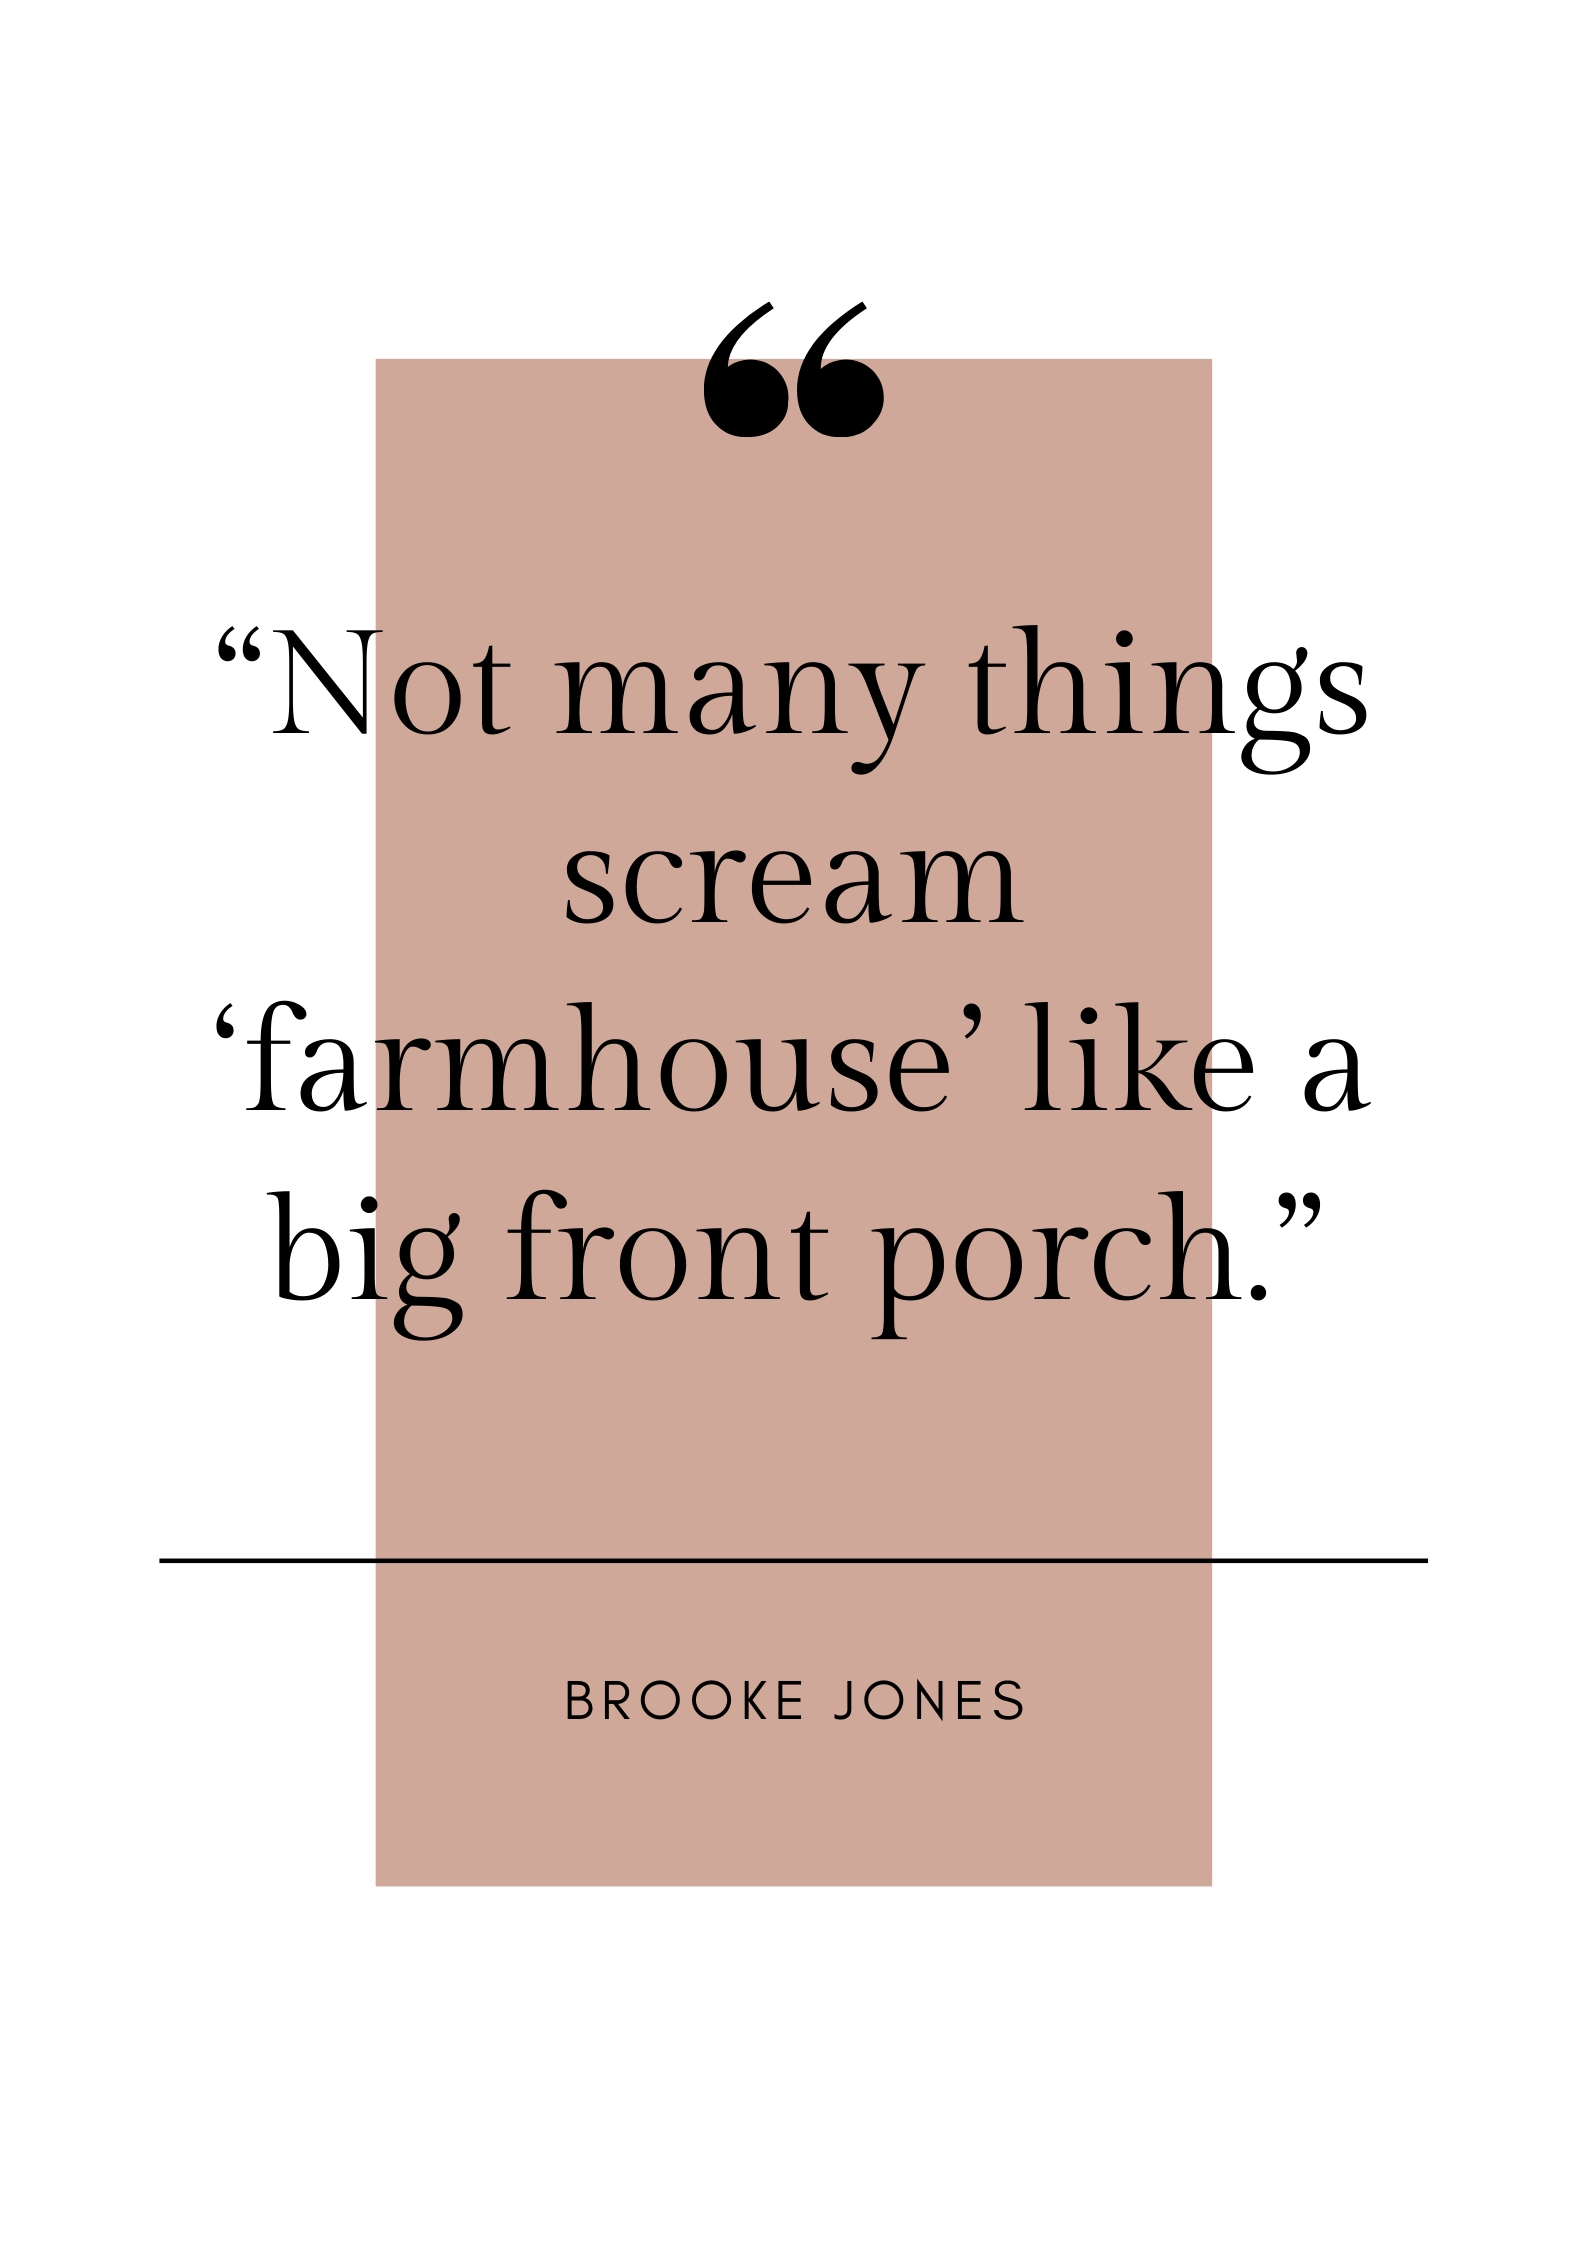 farmhouse quote